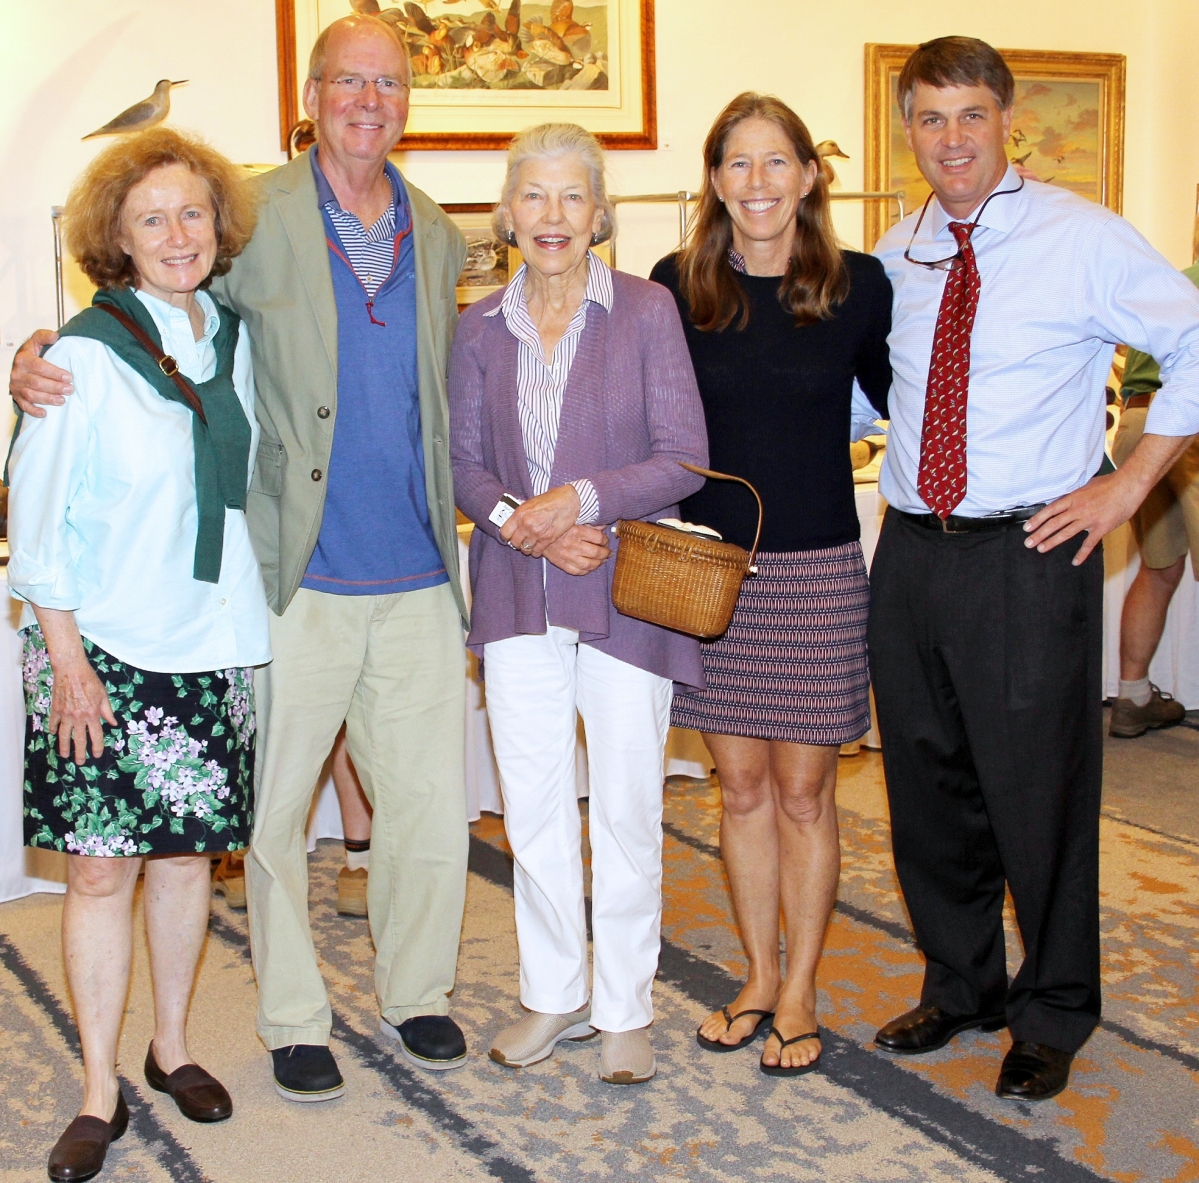 The late Donal C. O'Brien Jr championed many environmental causes. One was the Quebec-Labrador Foundation, which he chaired. Attending the sale, from left, were QLF biodiversity conservation consultant Dr Kathleen Blanchard and QLF president emeritus Lawrence B. Morris. From center, O'Brien's wife Katie, daughter Kit O'Brien Rohn and nephew Stephen B. O'Brien Jr, president of Copley Fine Art Auctions.